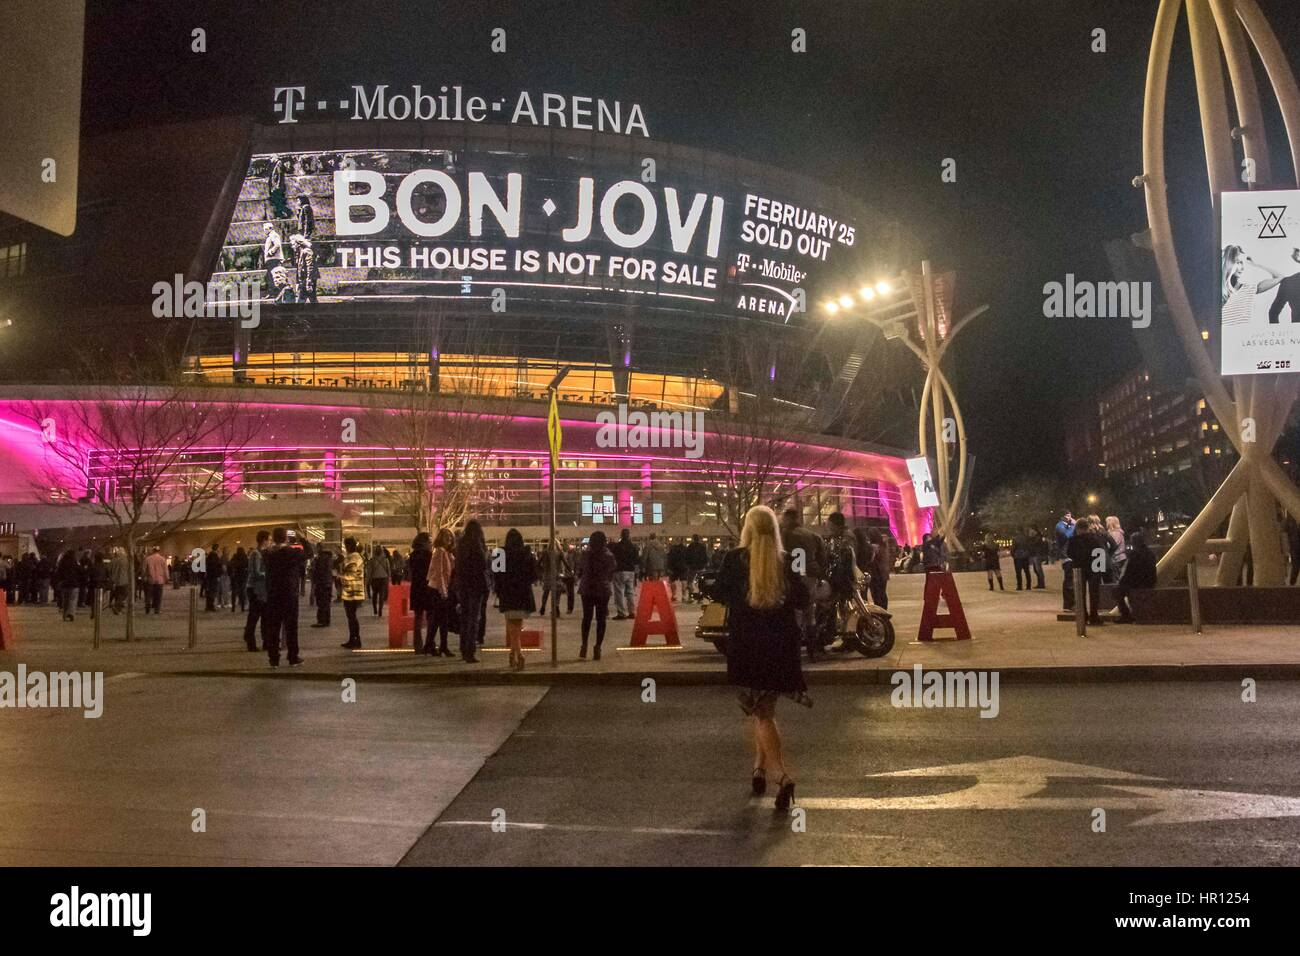 T Mobile Arena Stock Photos & T Mobile Arena Stock Images